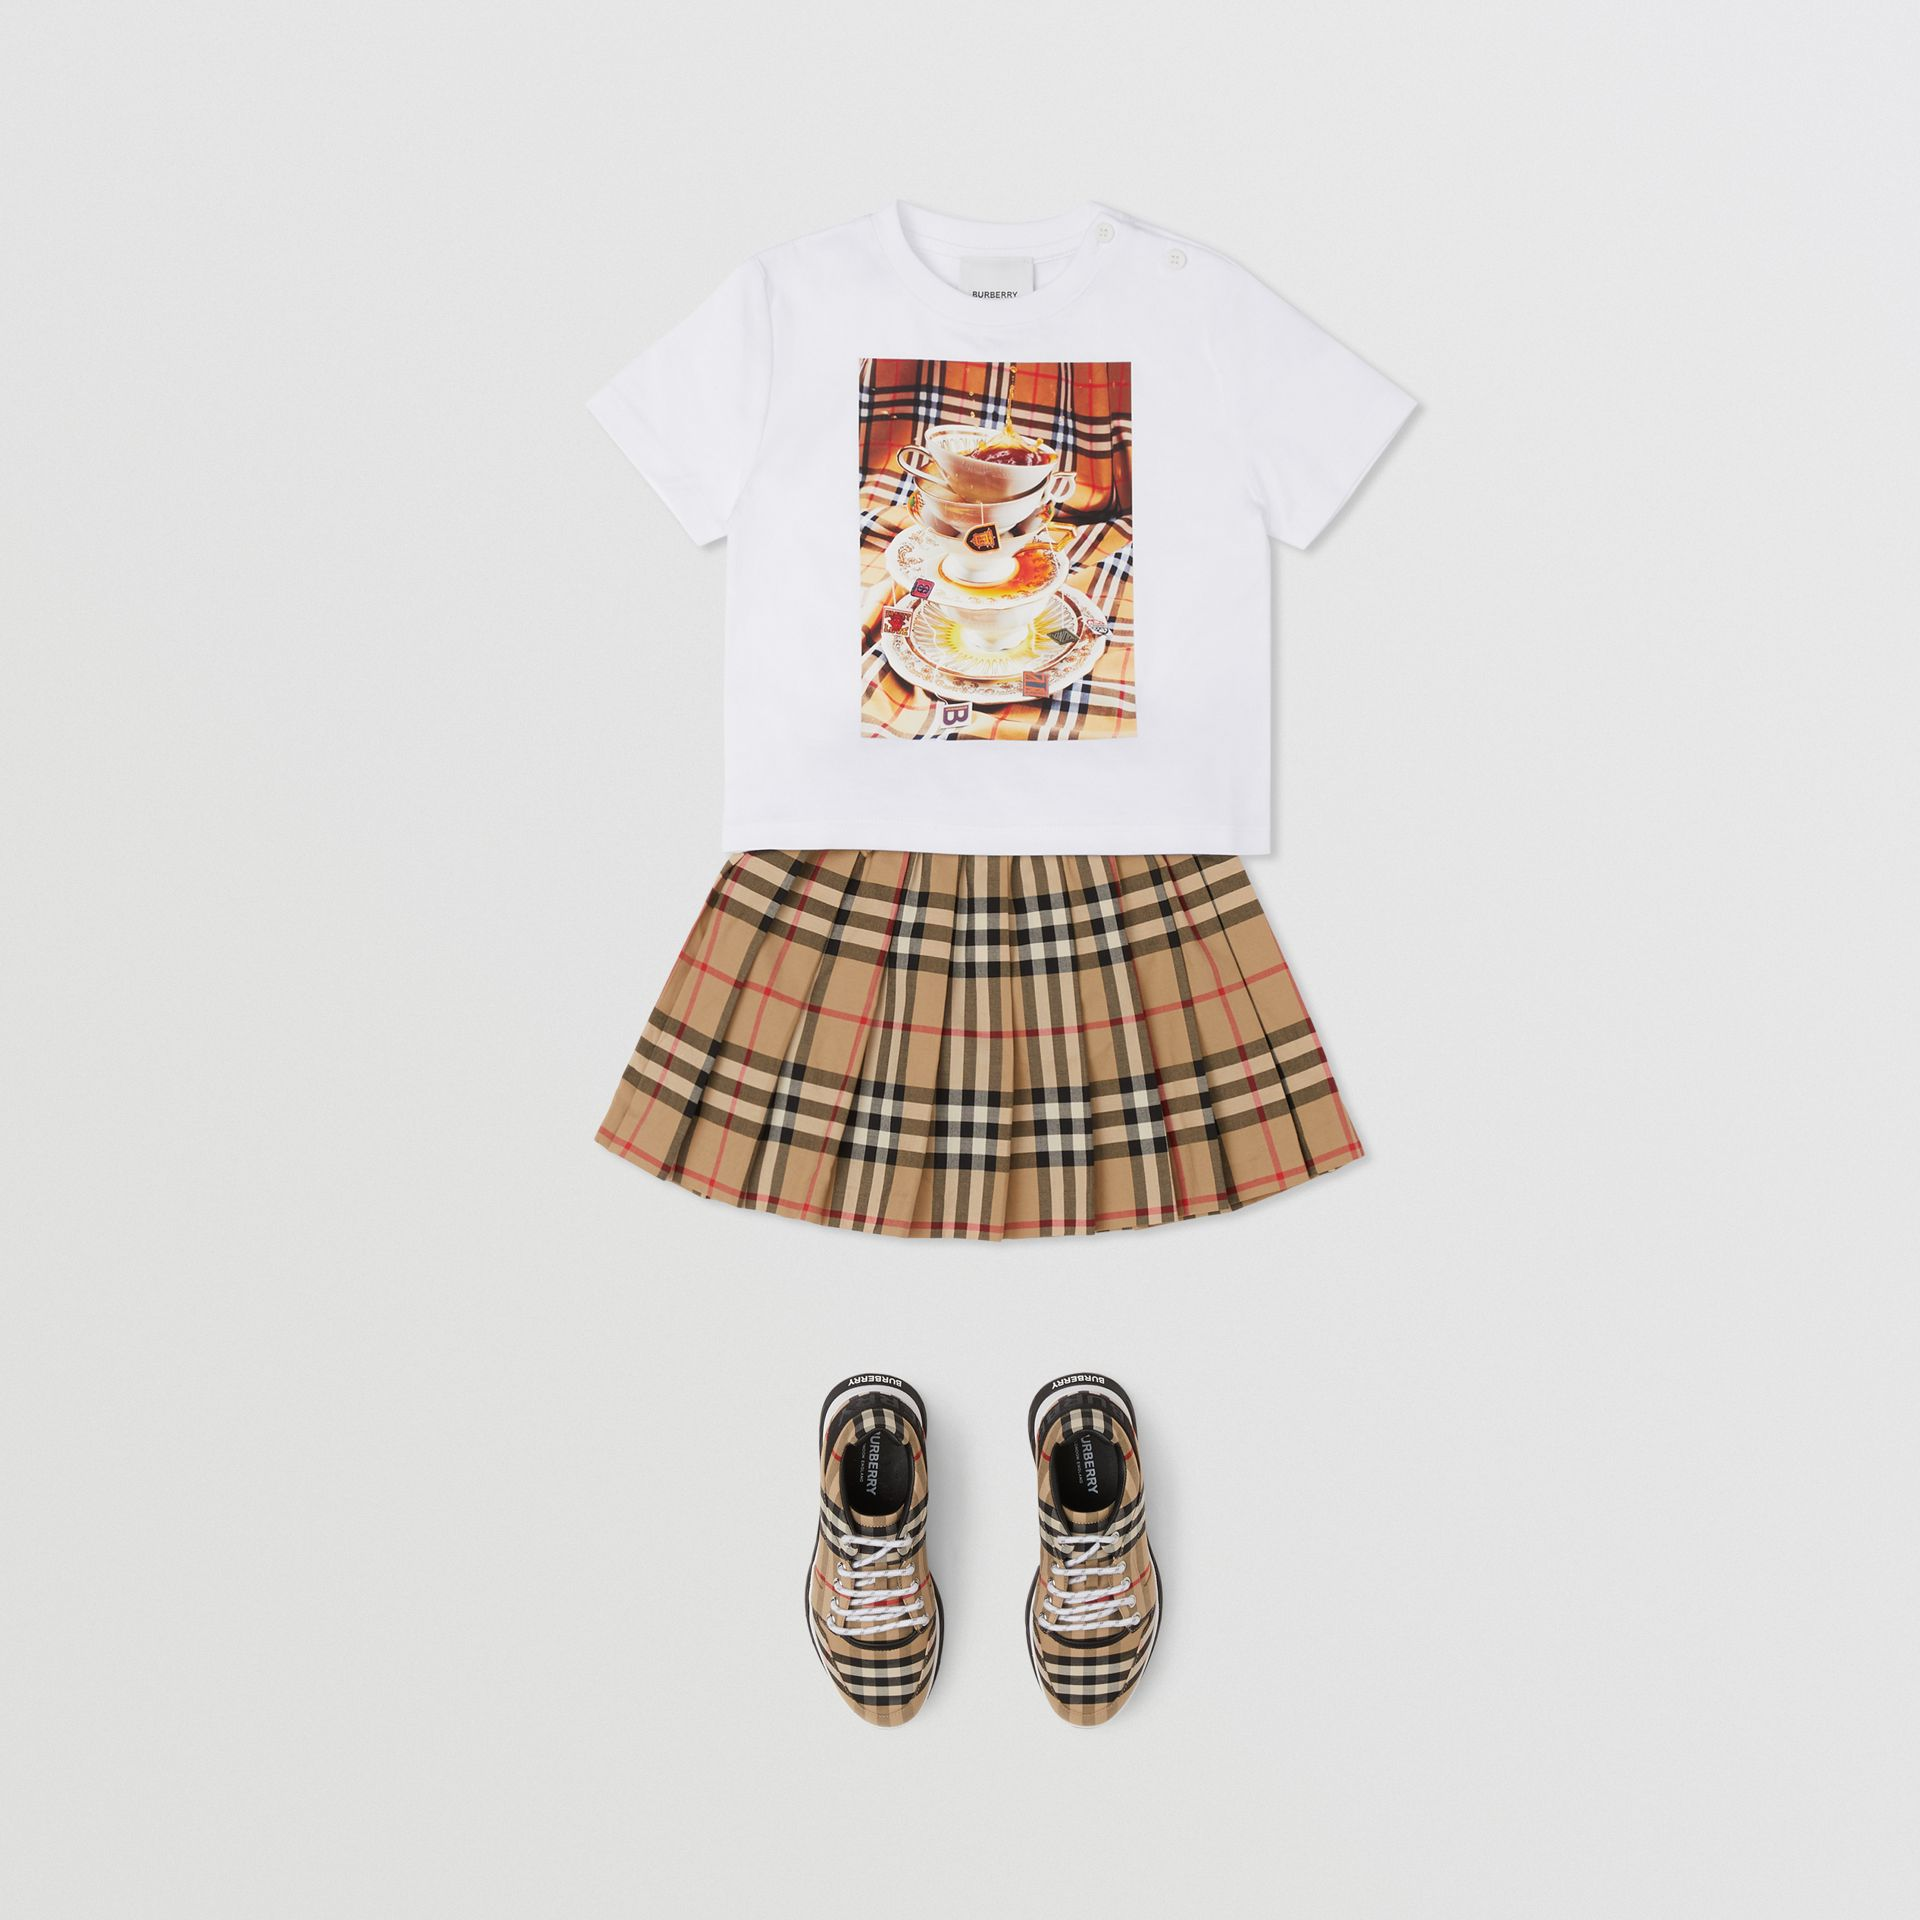 Teacup Print T-shirt in Multicolour - Children | Burberry - gallery image 2